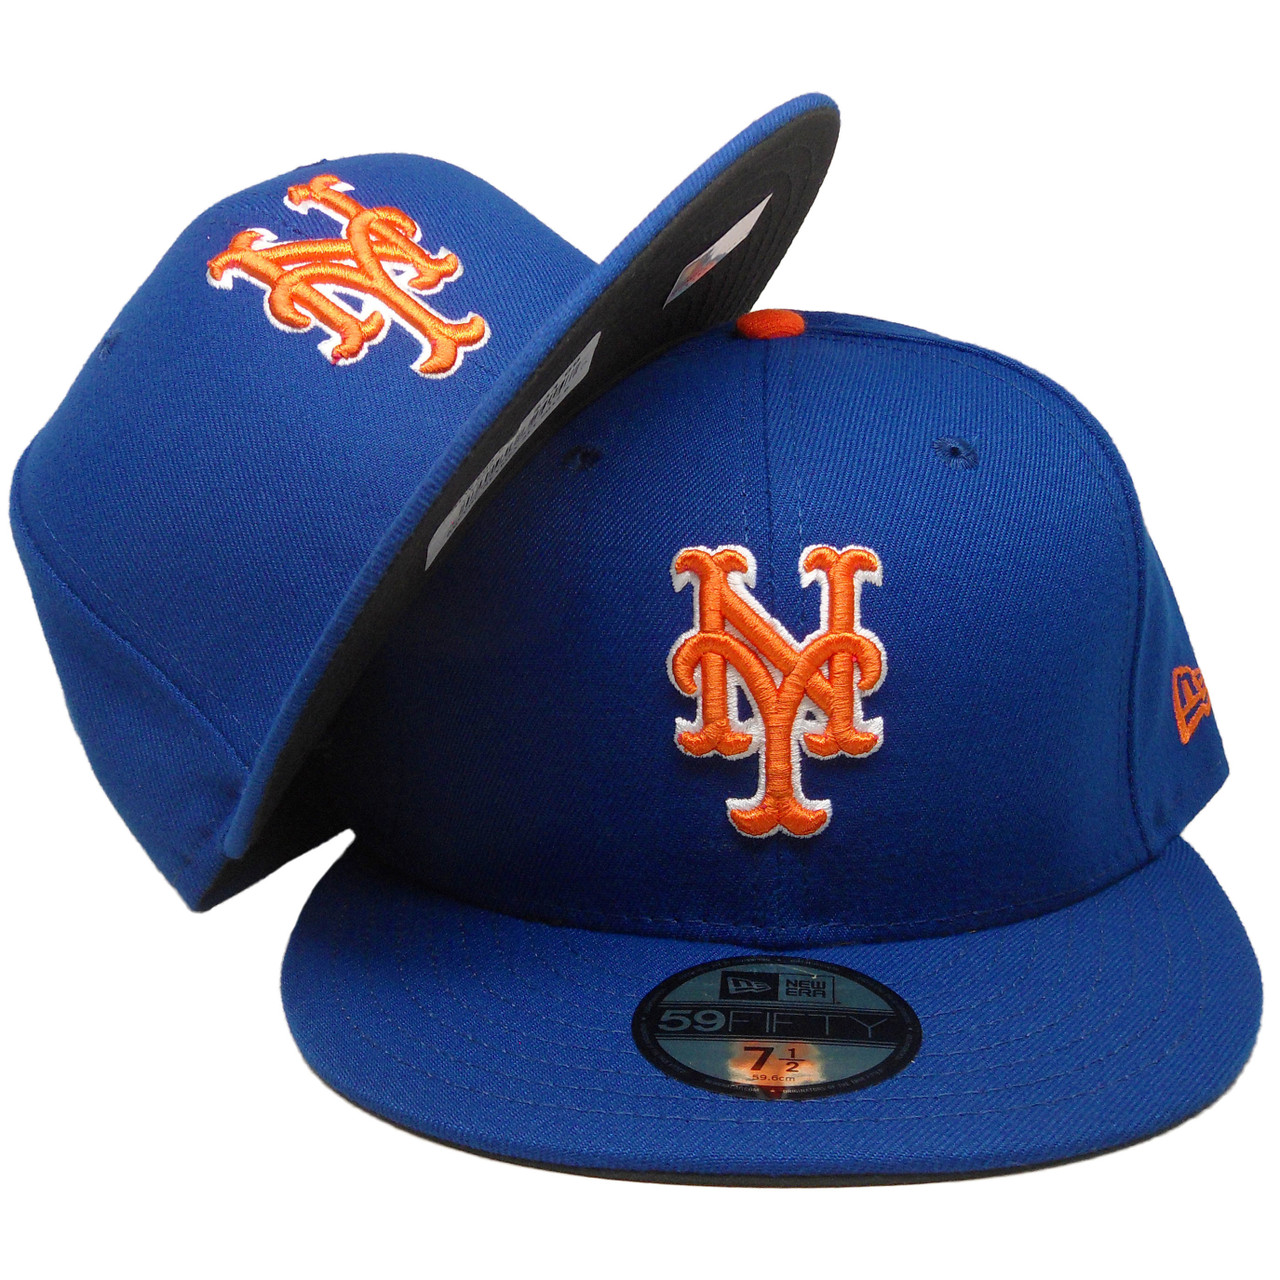 huge selection of e6efe d1d0d New York Mets New Era 59Fifty 2018 Onfield Fitted Hat - Royal, Orange, White  - ECapsUnlimited.com